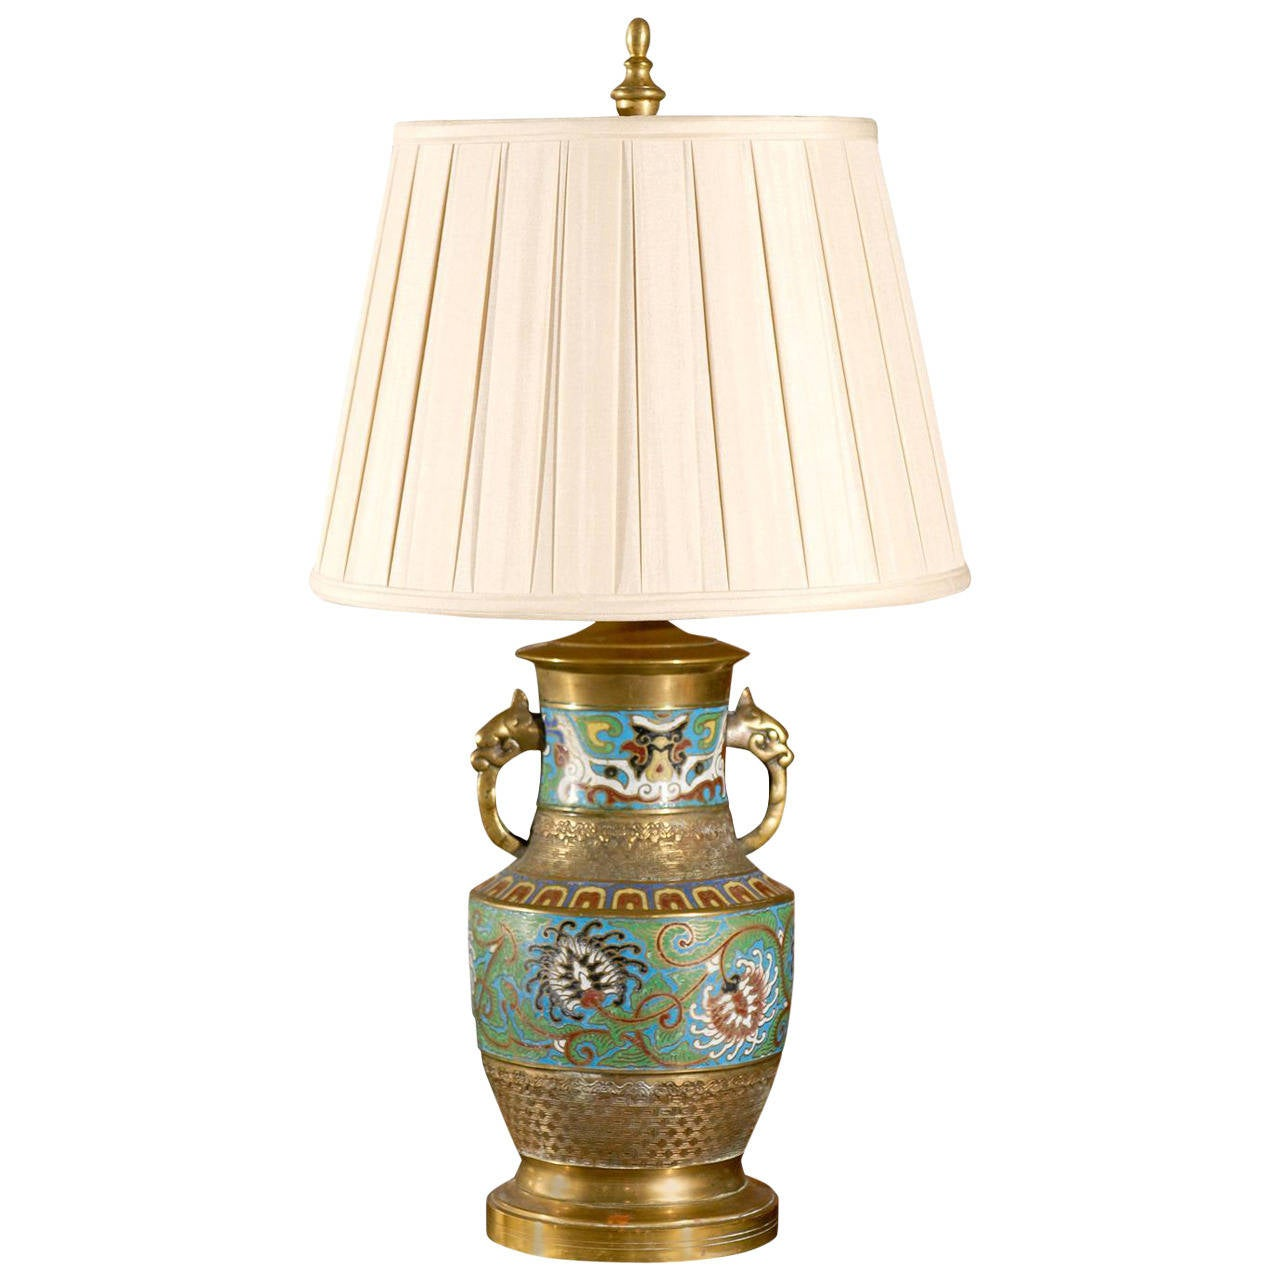 Chinese Cloisonne Table Lamp